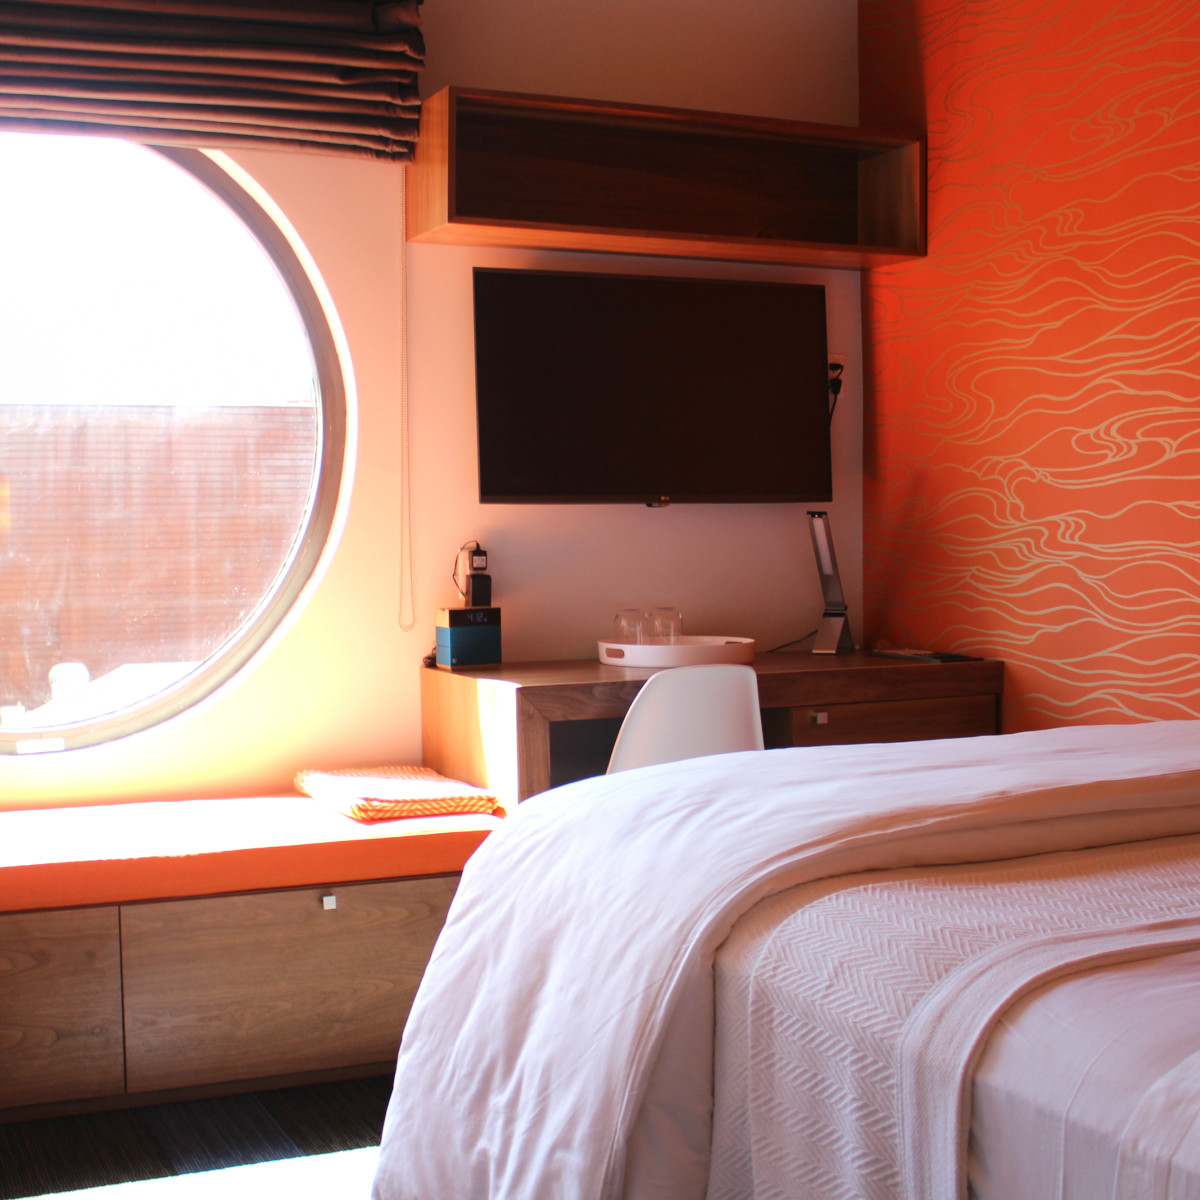 Hotel Eleven 11th Street Austin 2016 guest bedroom small orange